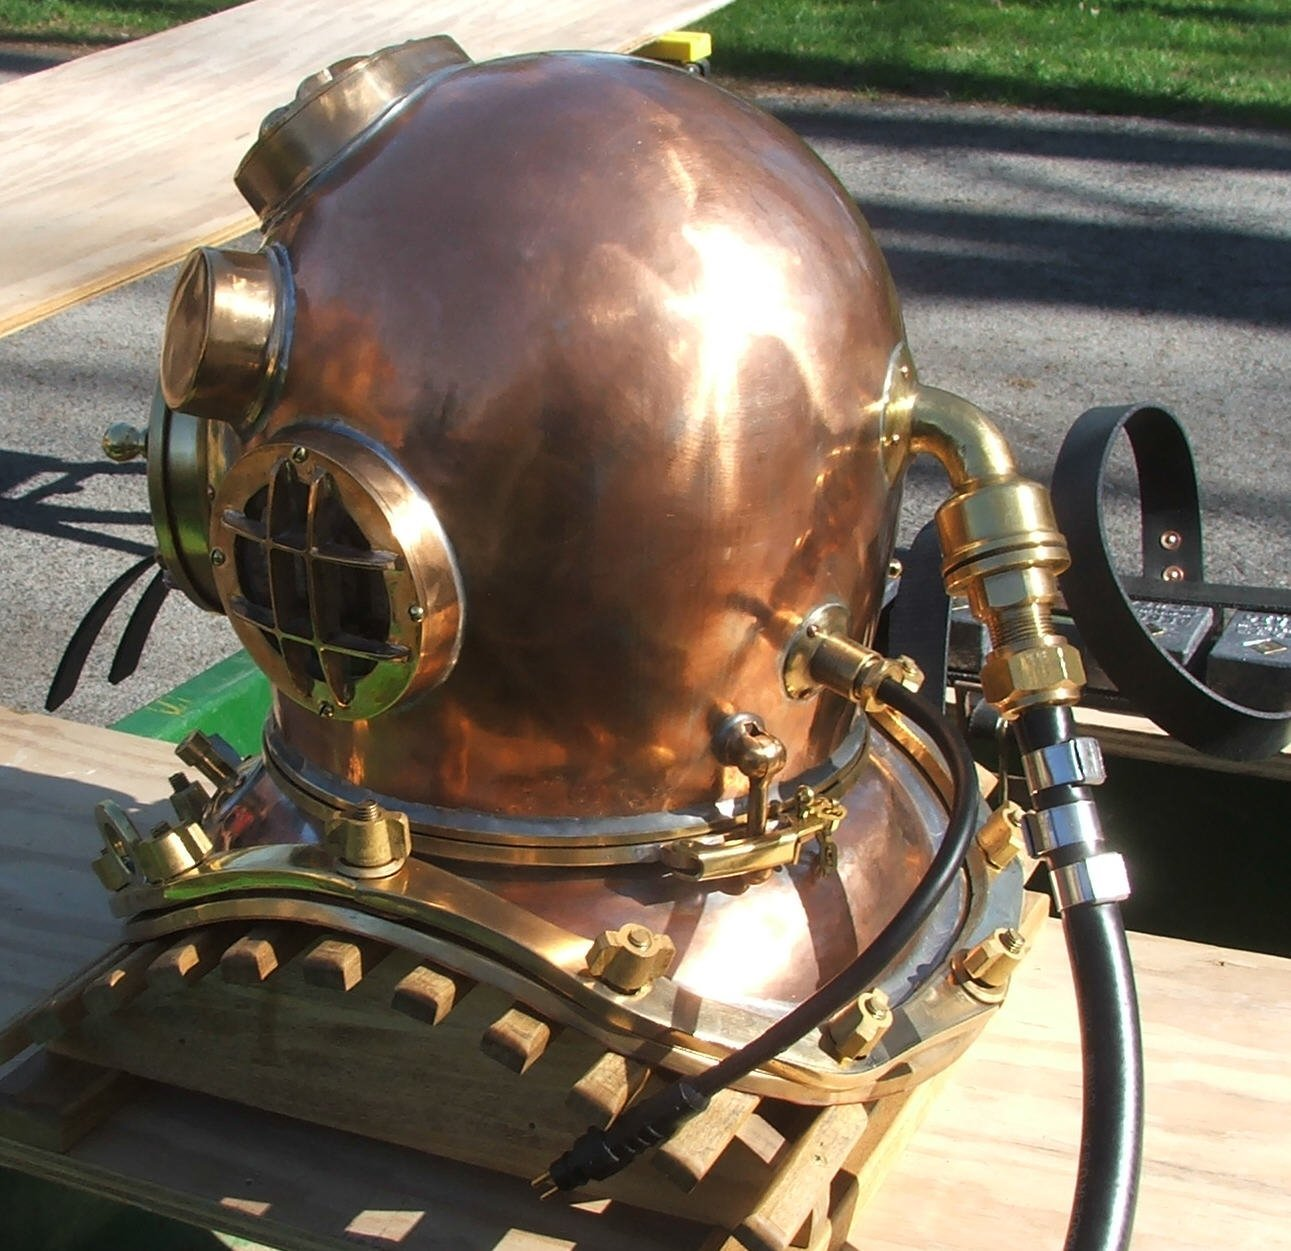 diving helmet Chinese copper HD Wallpaper